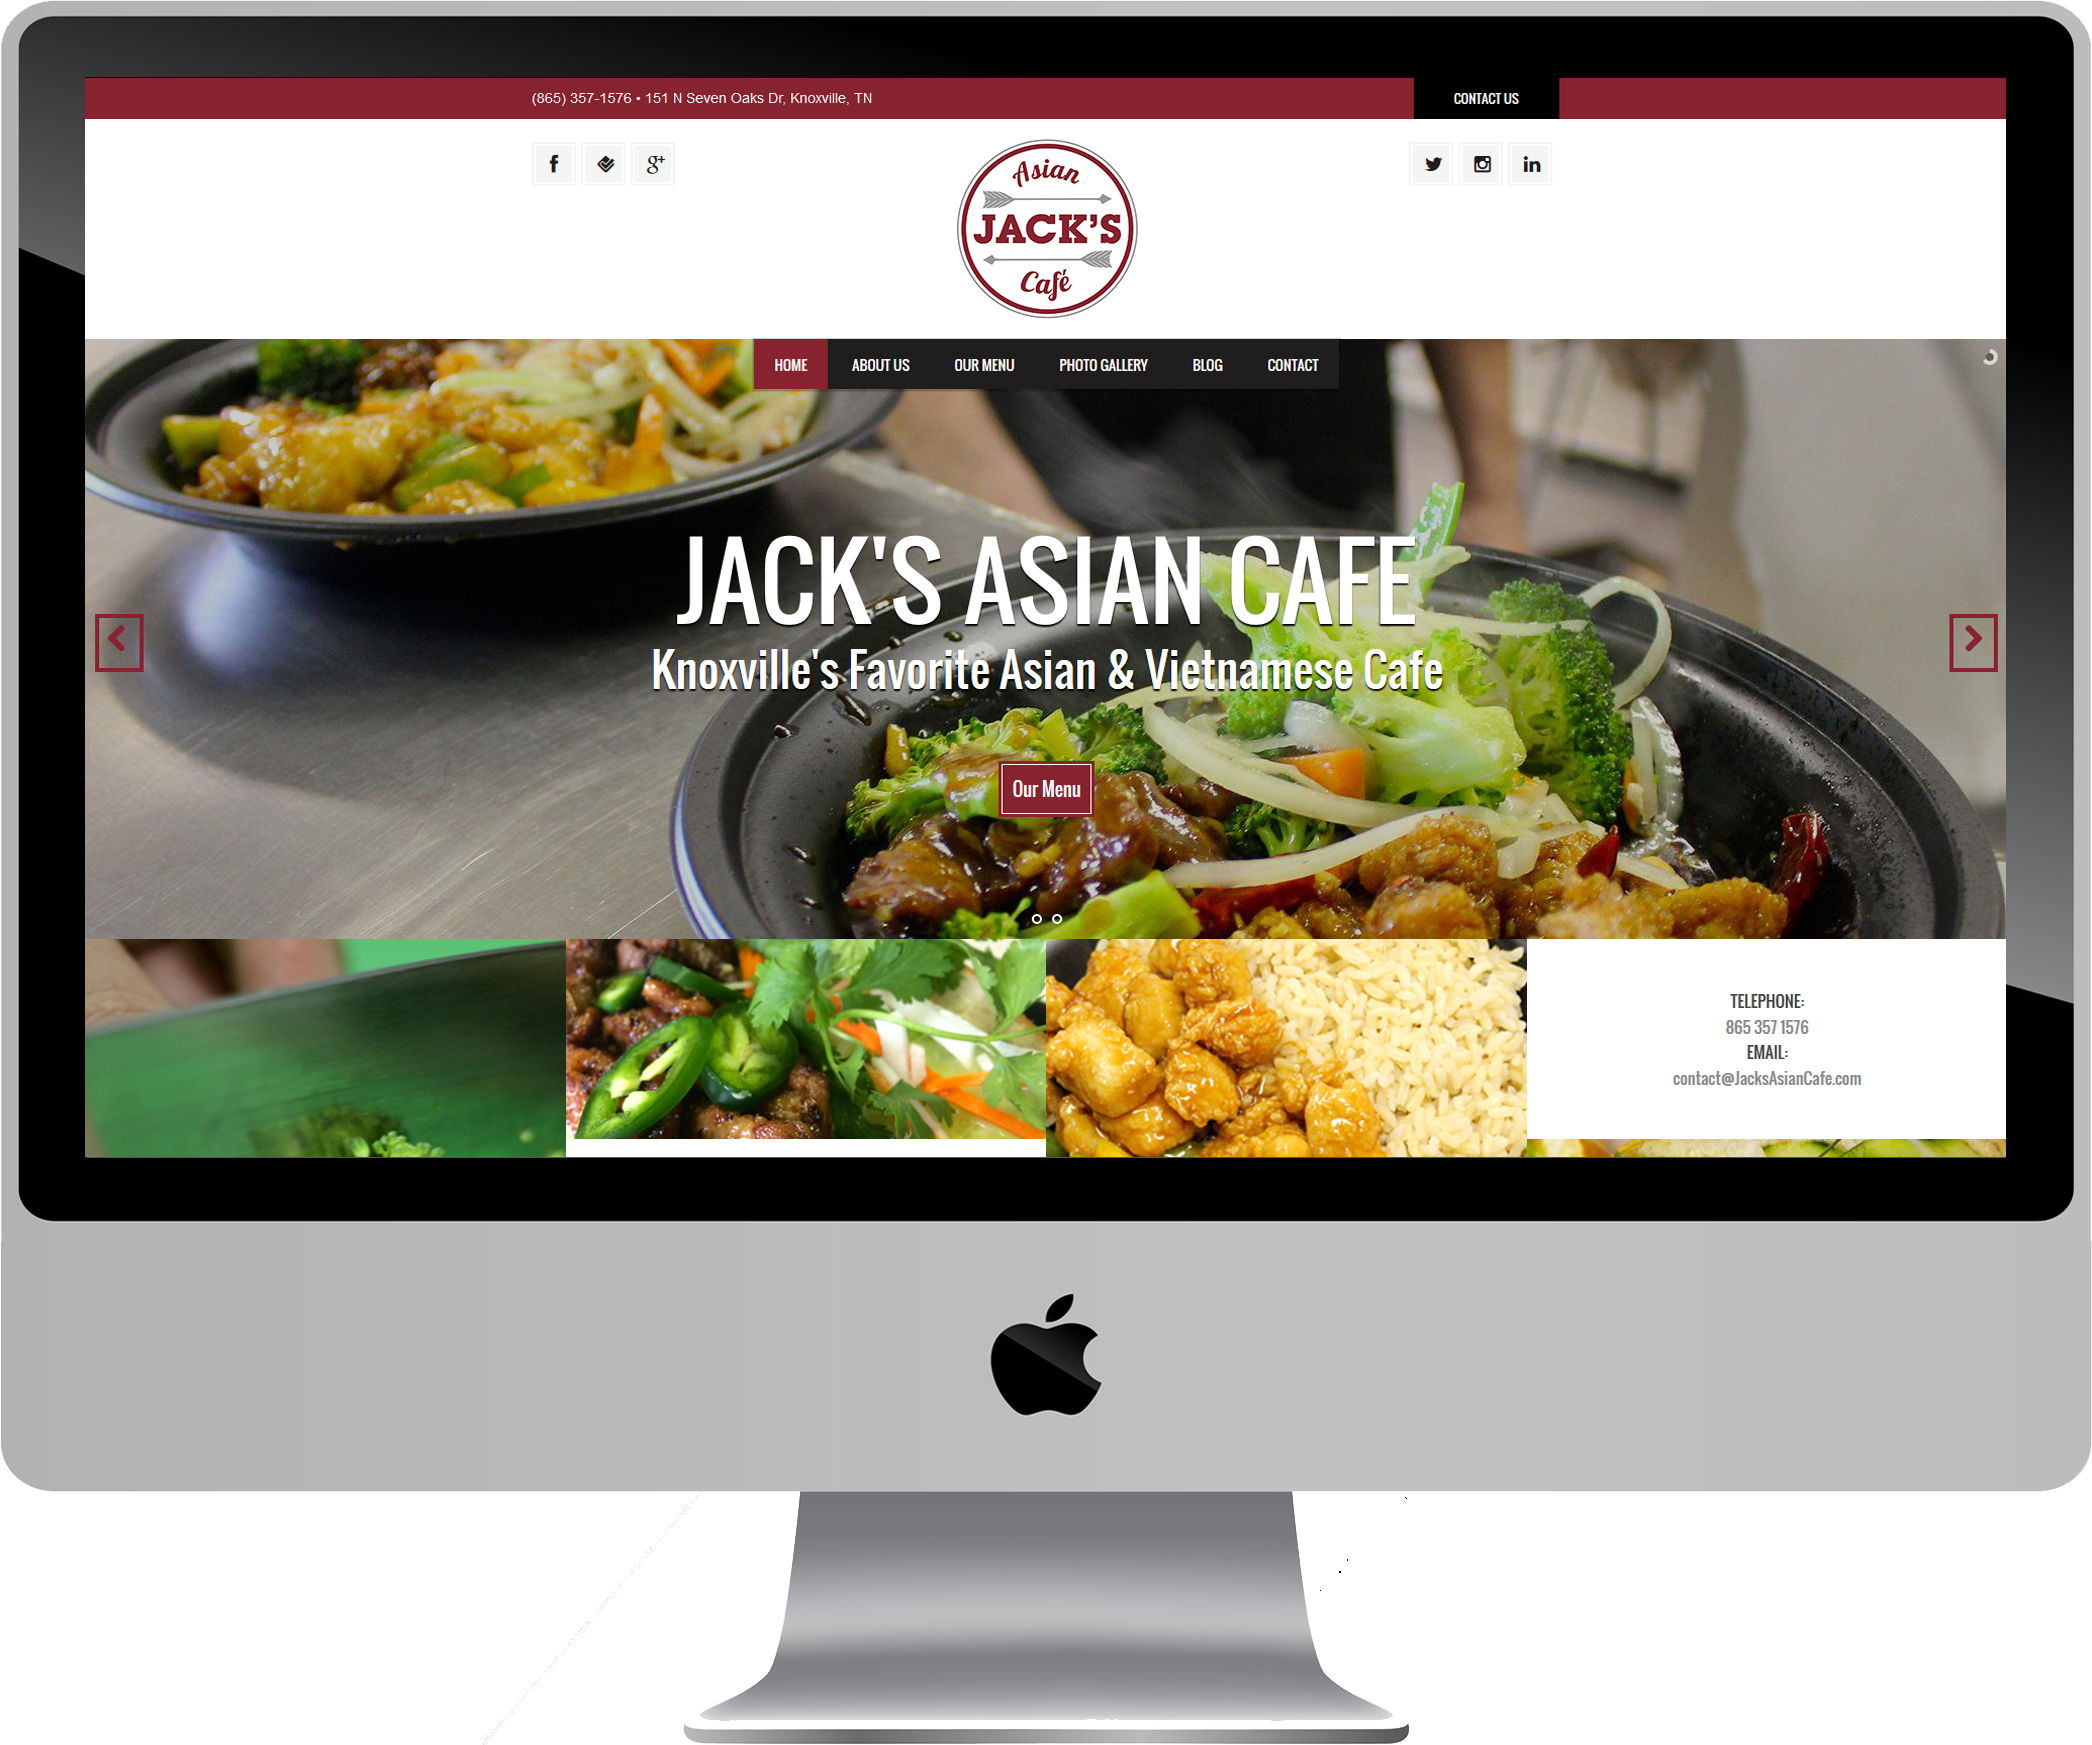 Jack's Asian Cafe on a Desktop